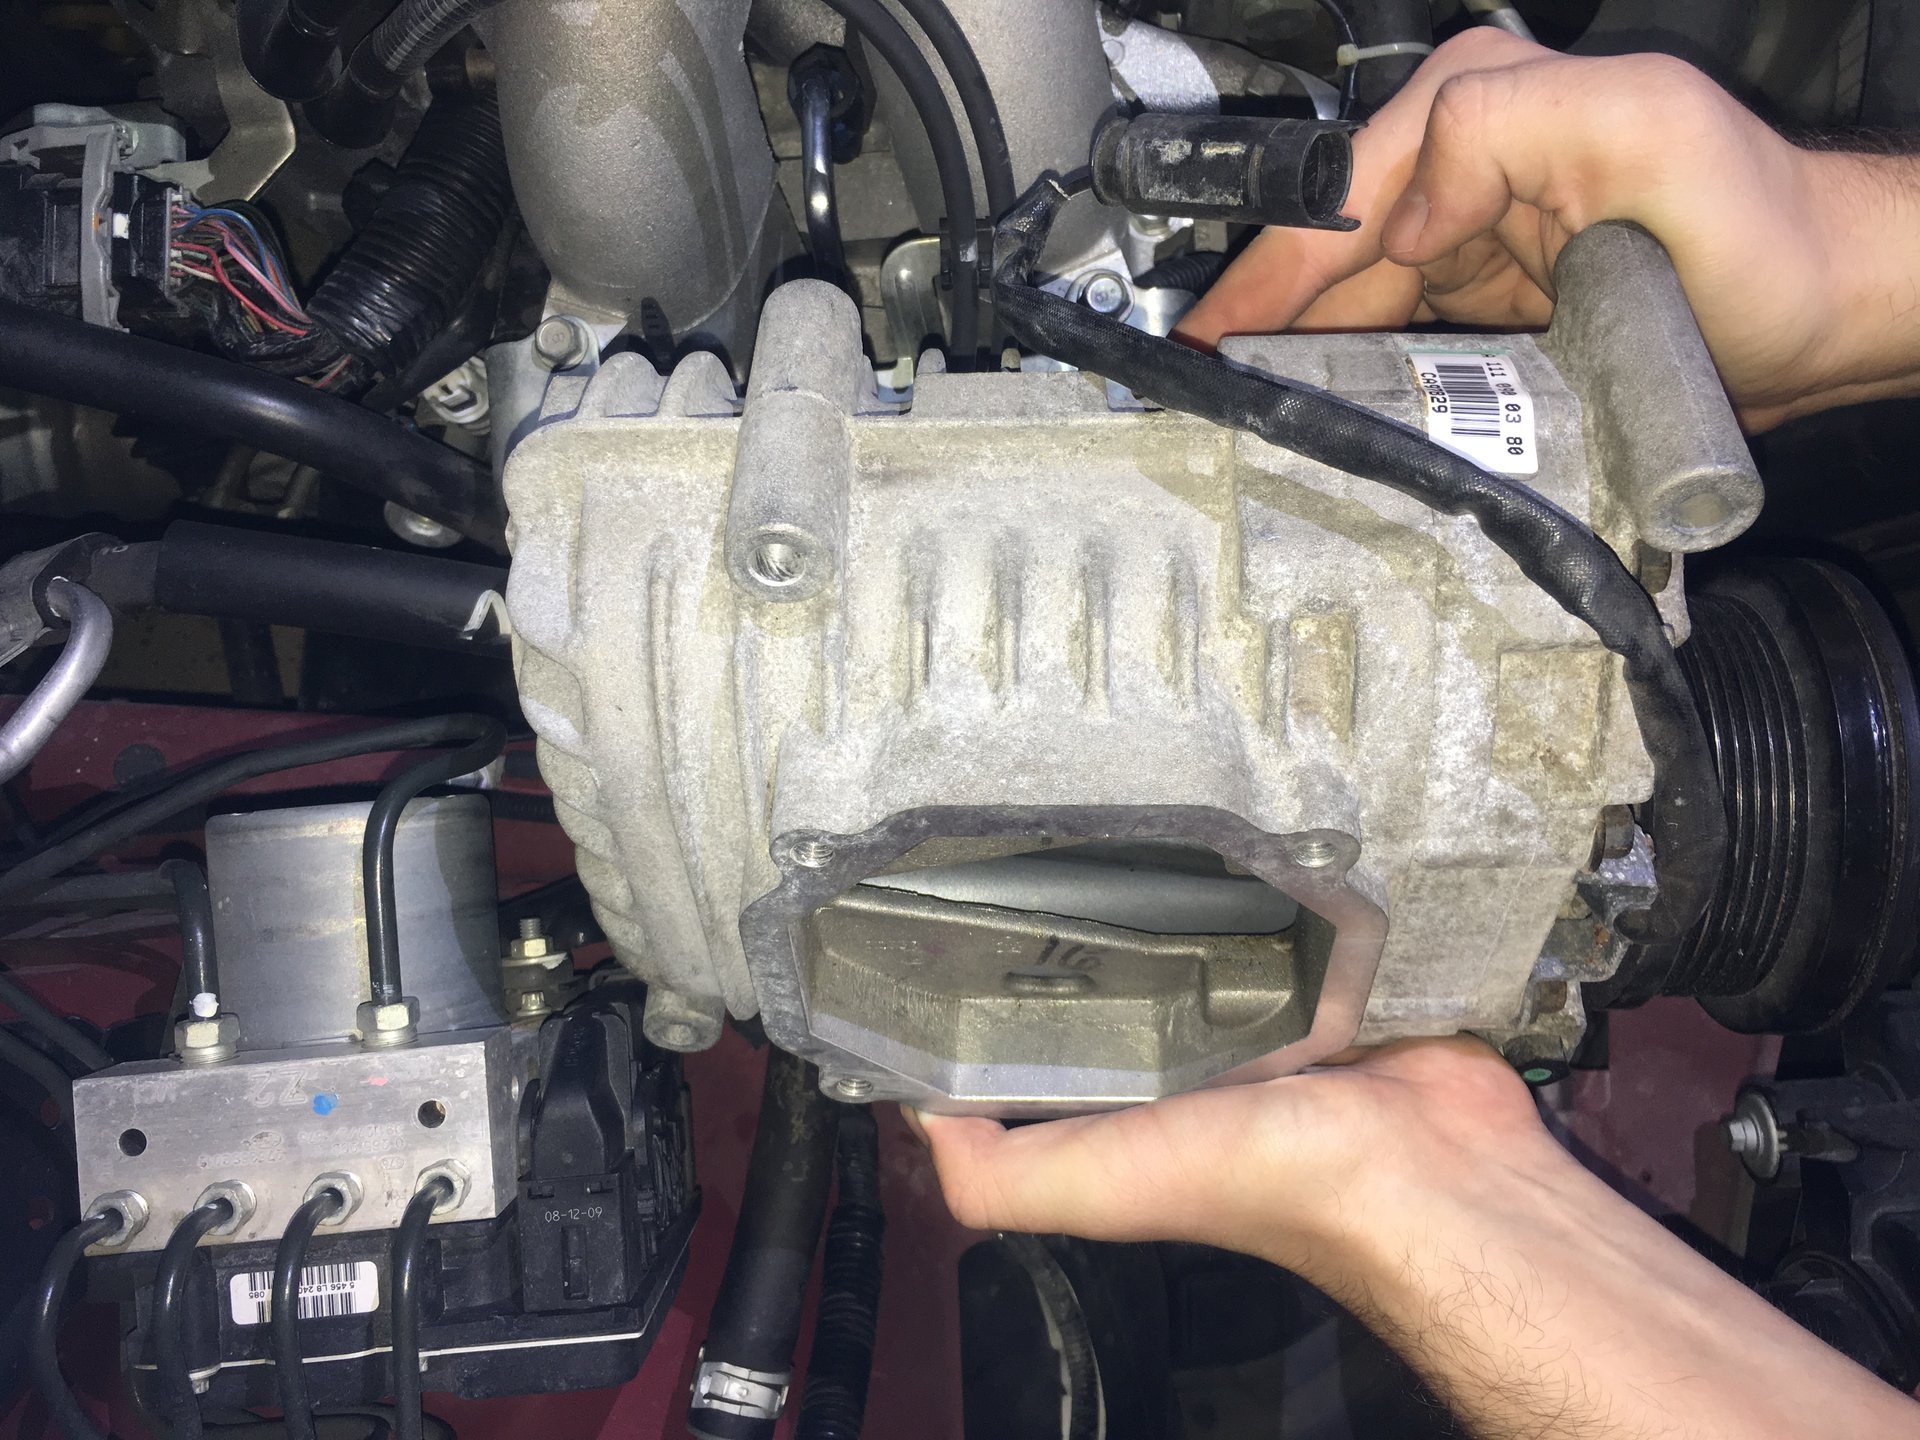 09-'13) - 2010 EJ25 Supercharger Project | Subaru Forester